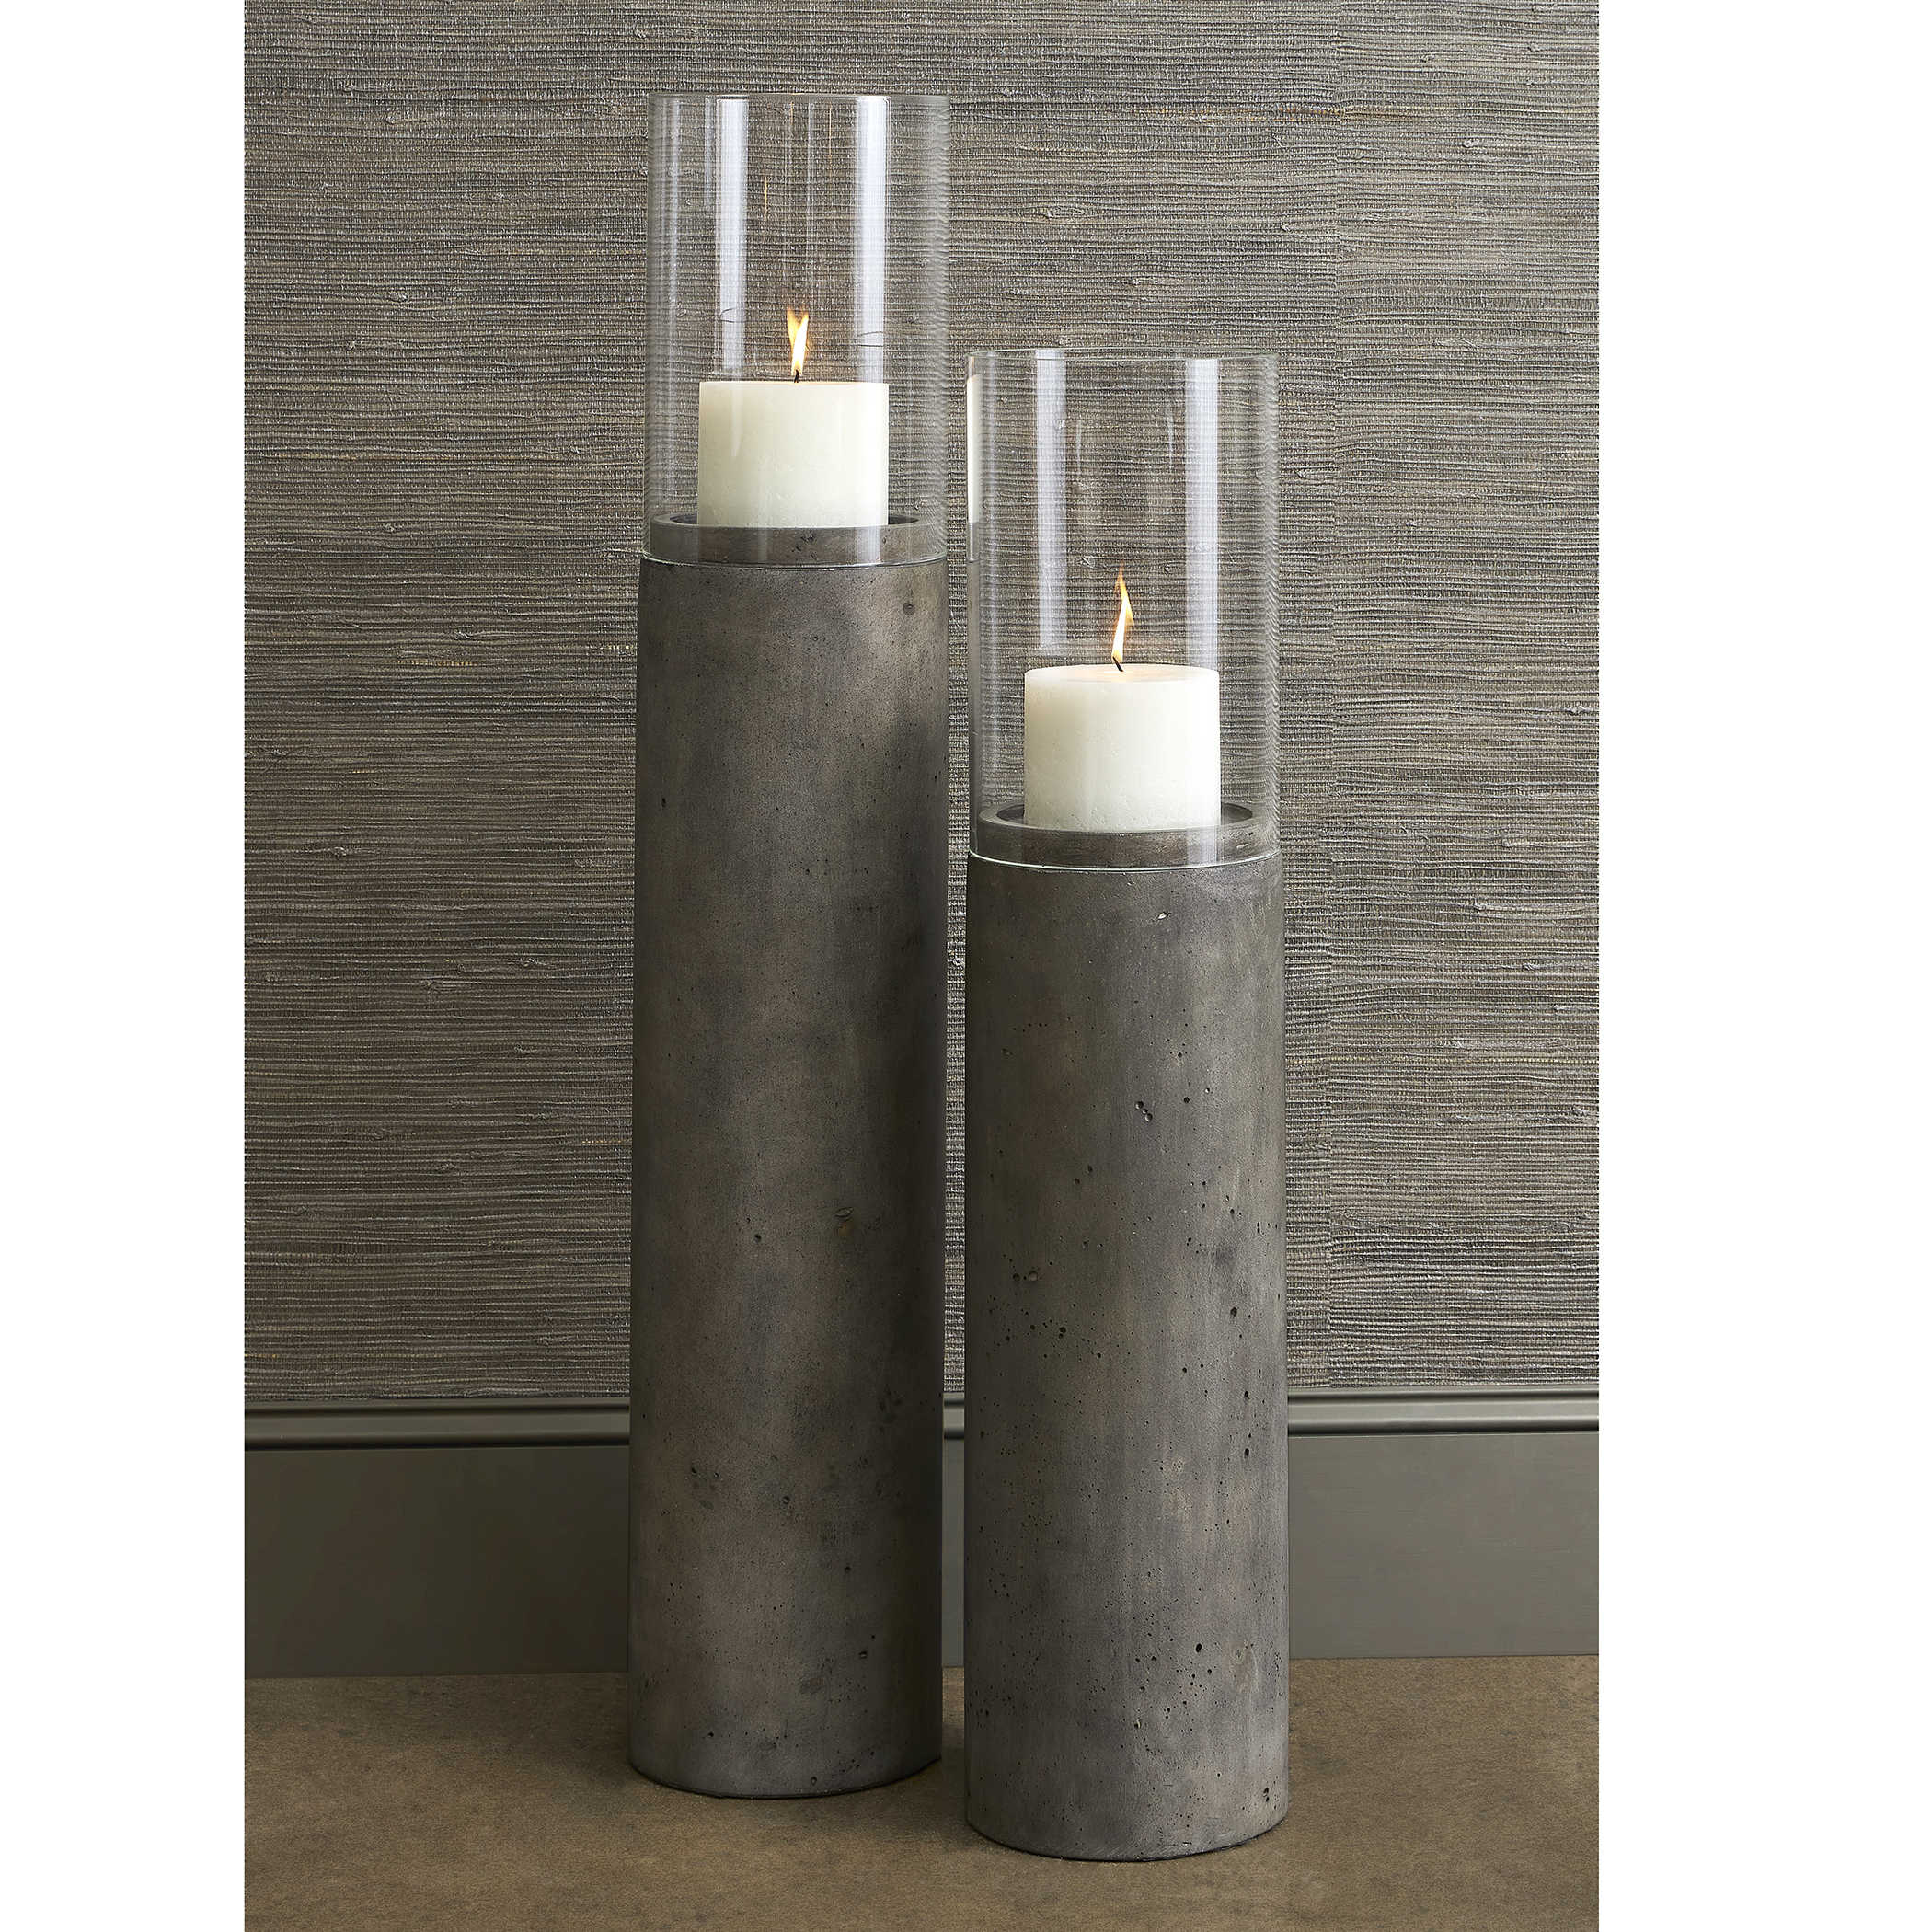 Oversized Floor Candle Holders Cheaper Than Retail Price Buy Clothing Accessories And Lifestyle Products For Women Men